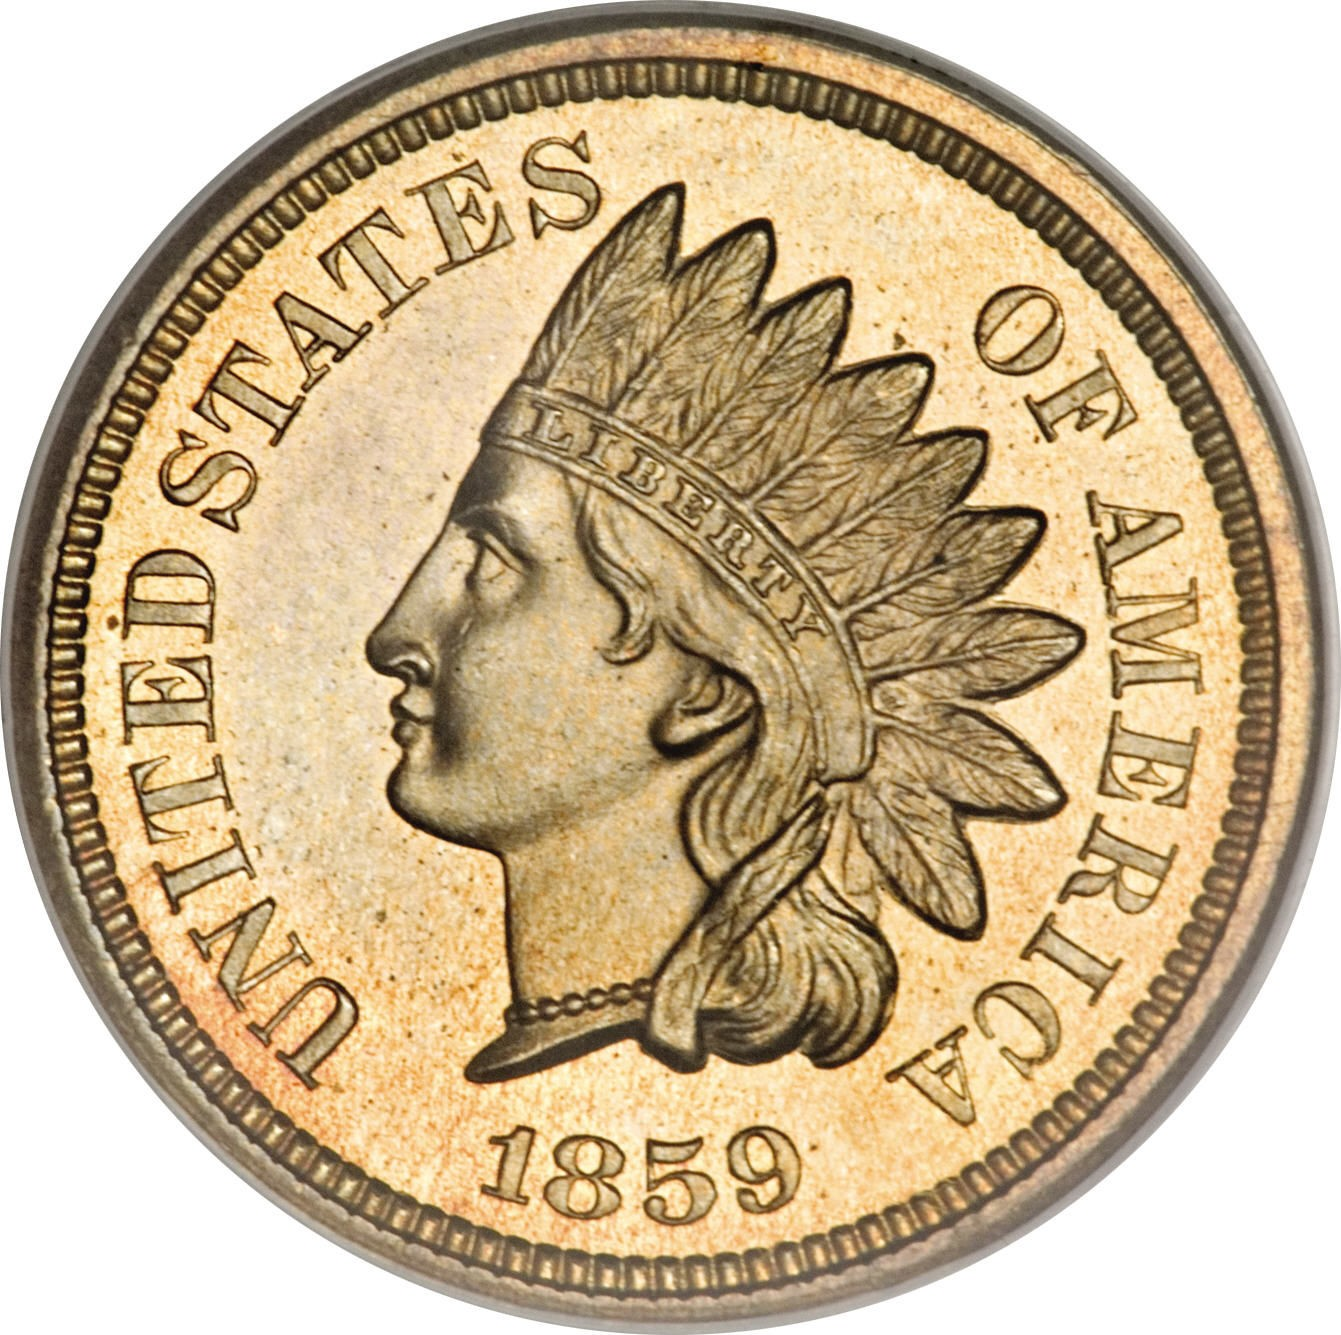 United States 1 Cent (1859 Indian Head Cent)